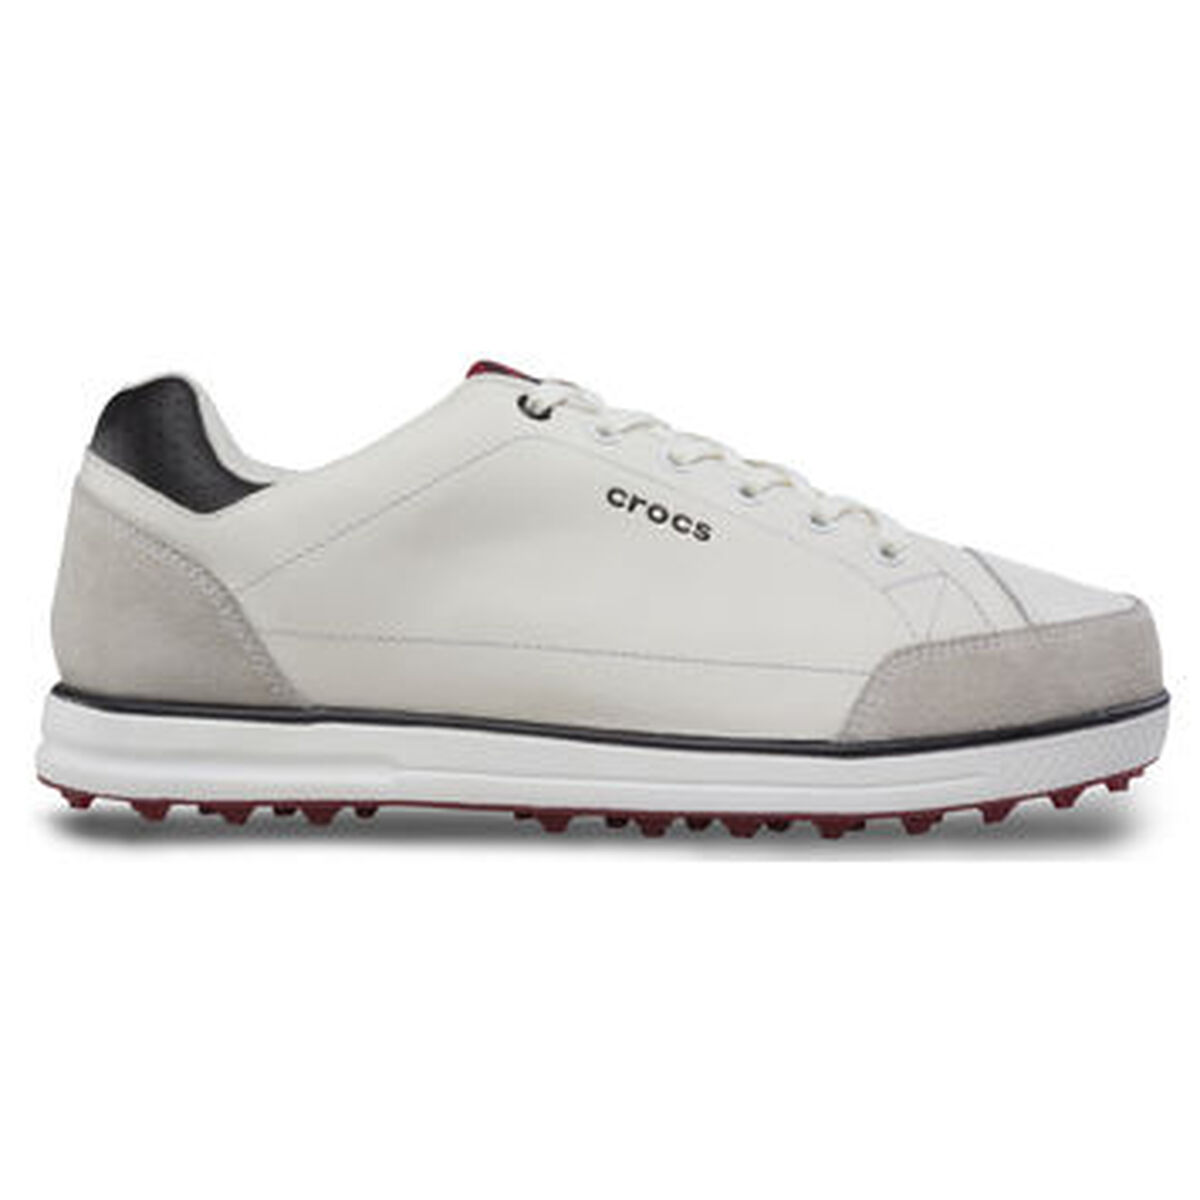 c8b336c42 Crocs Karslon Men s Golf Shoe  Shop Quality Crocs Men s Golf Shoes ...